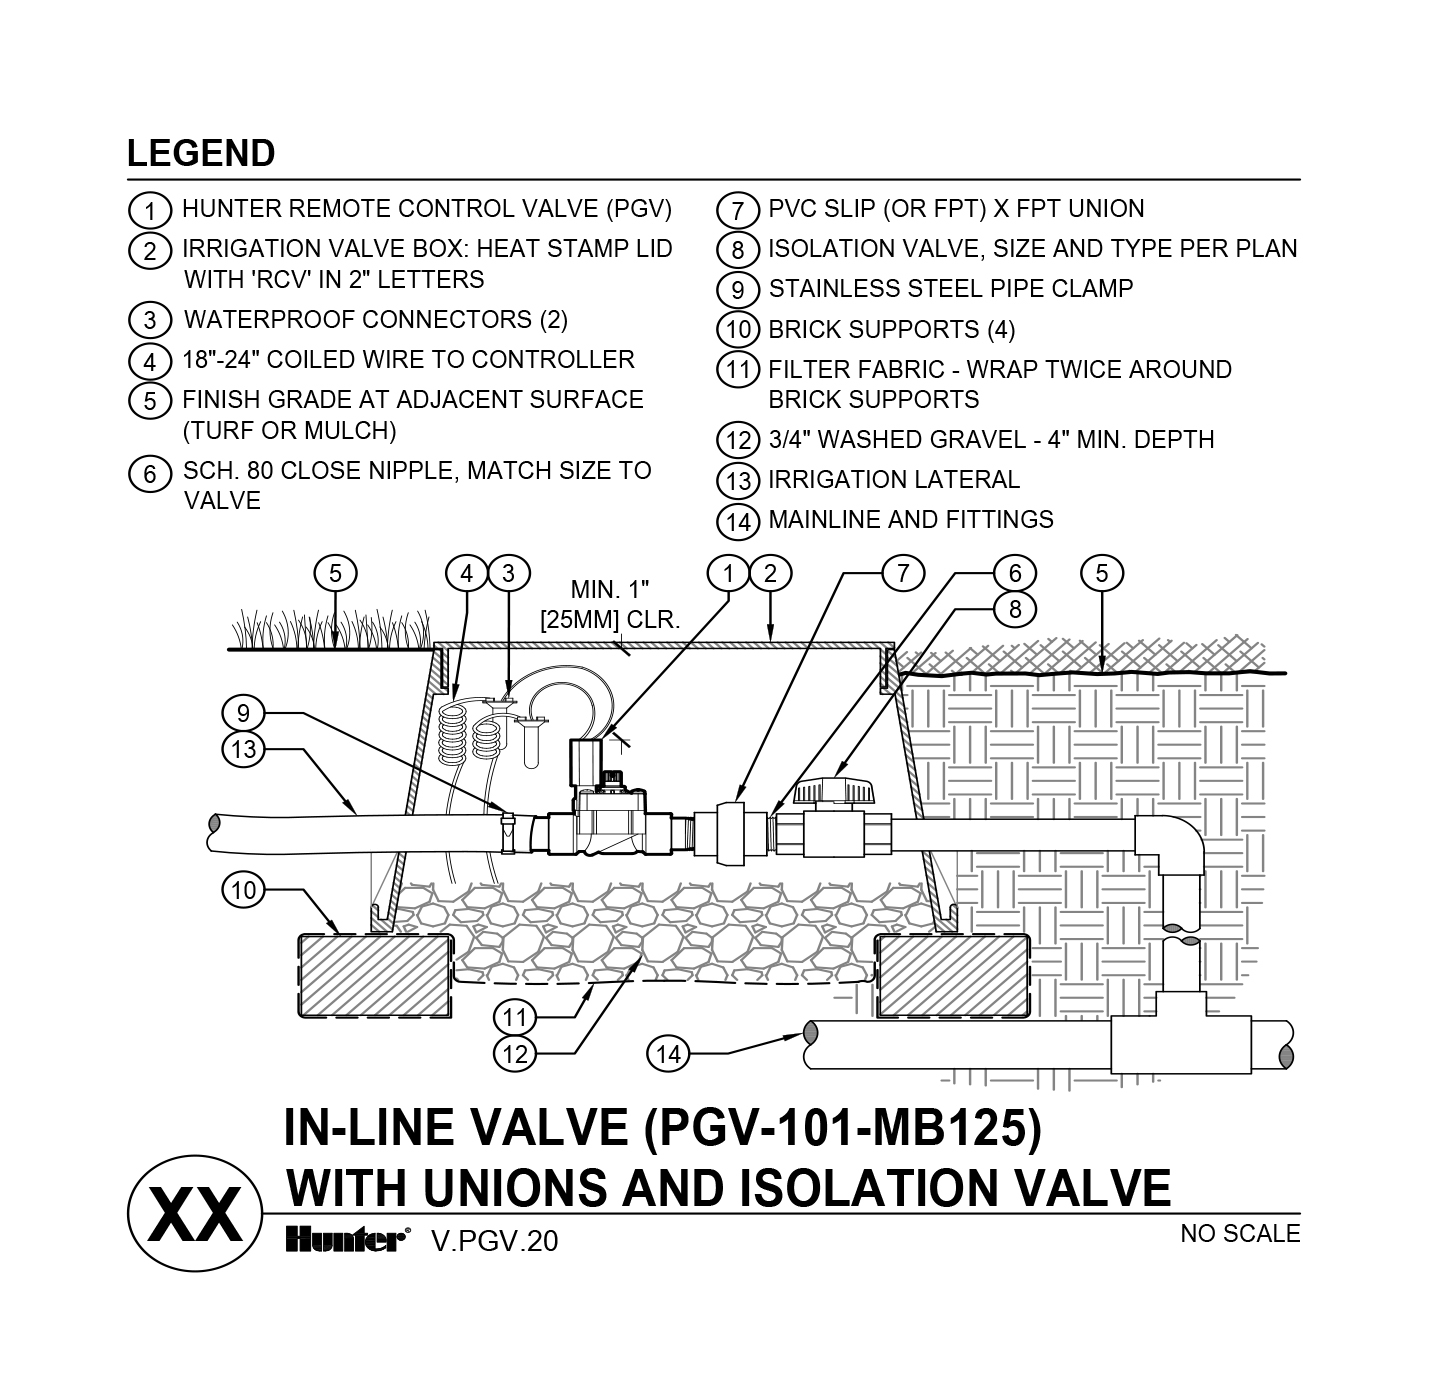 CAD - PGV-101-MB125 with unions and valves